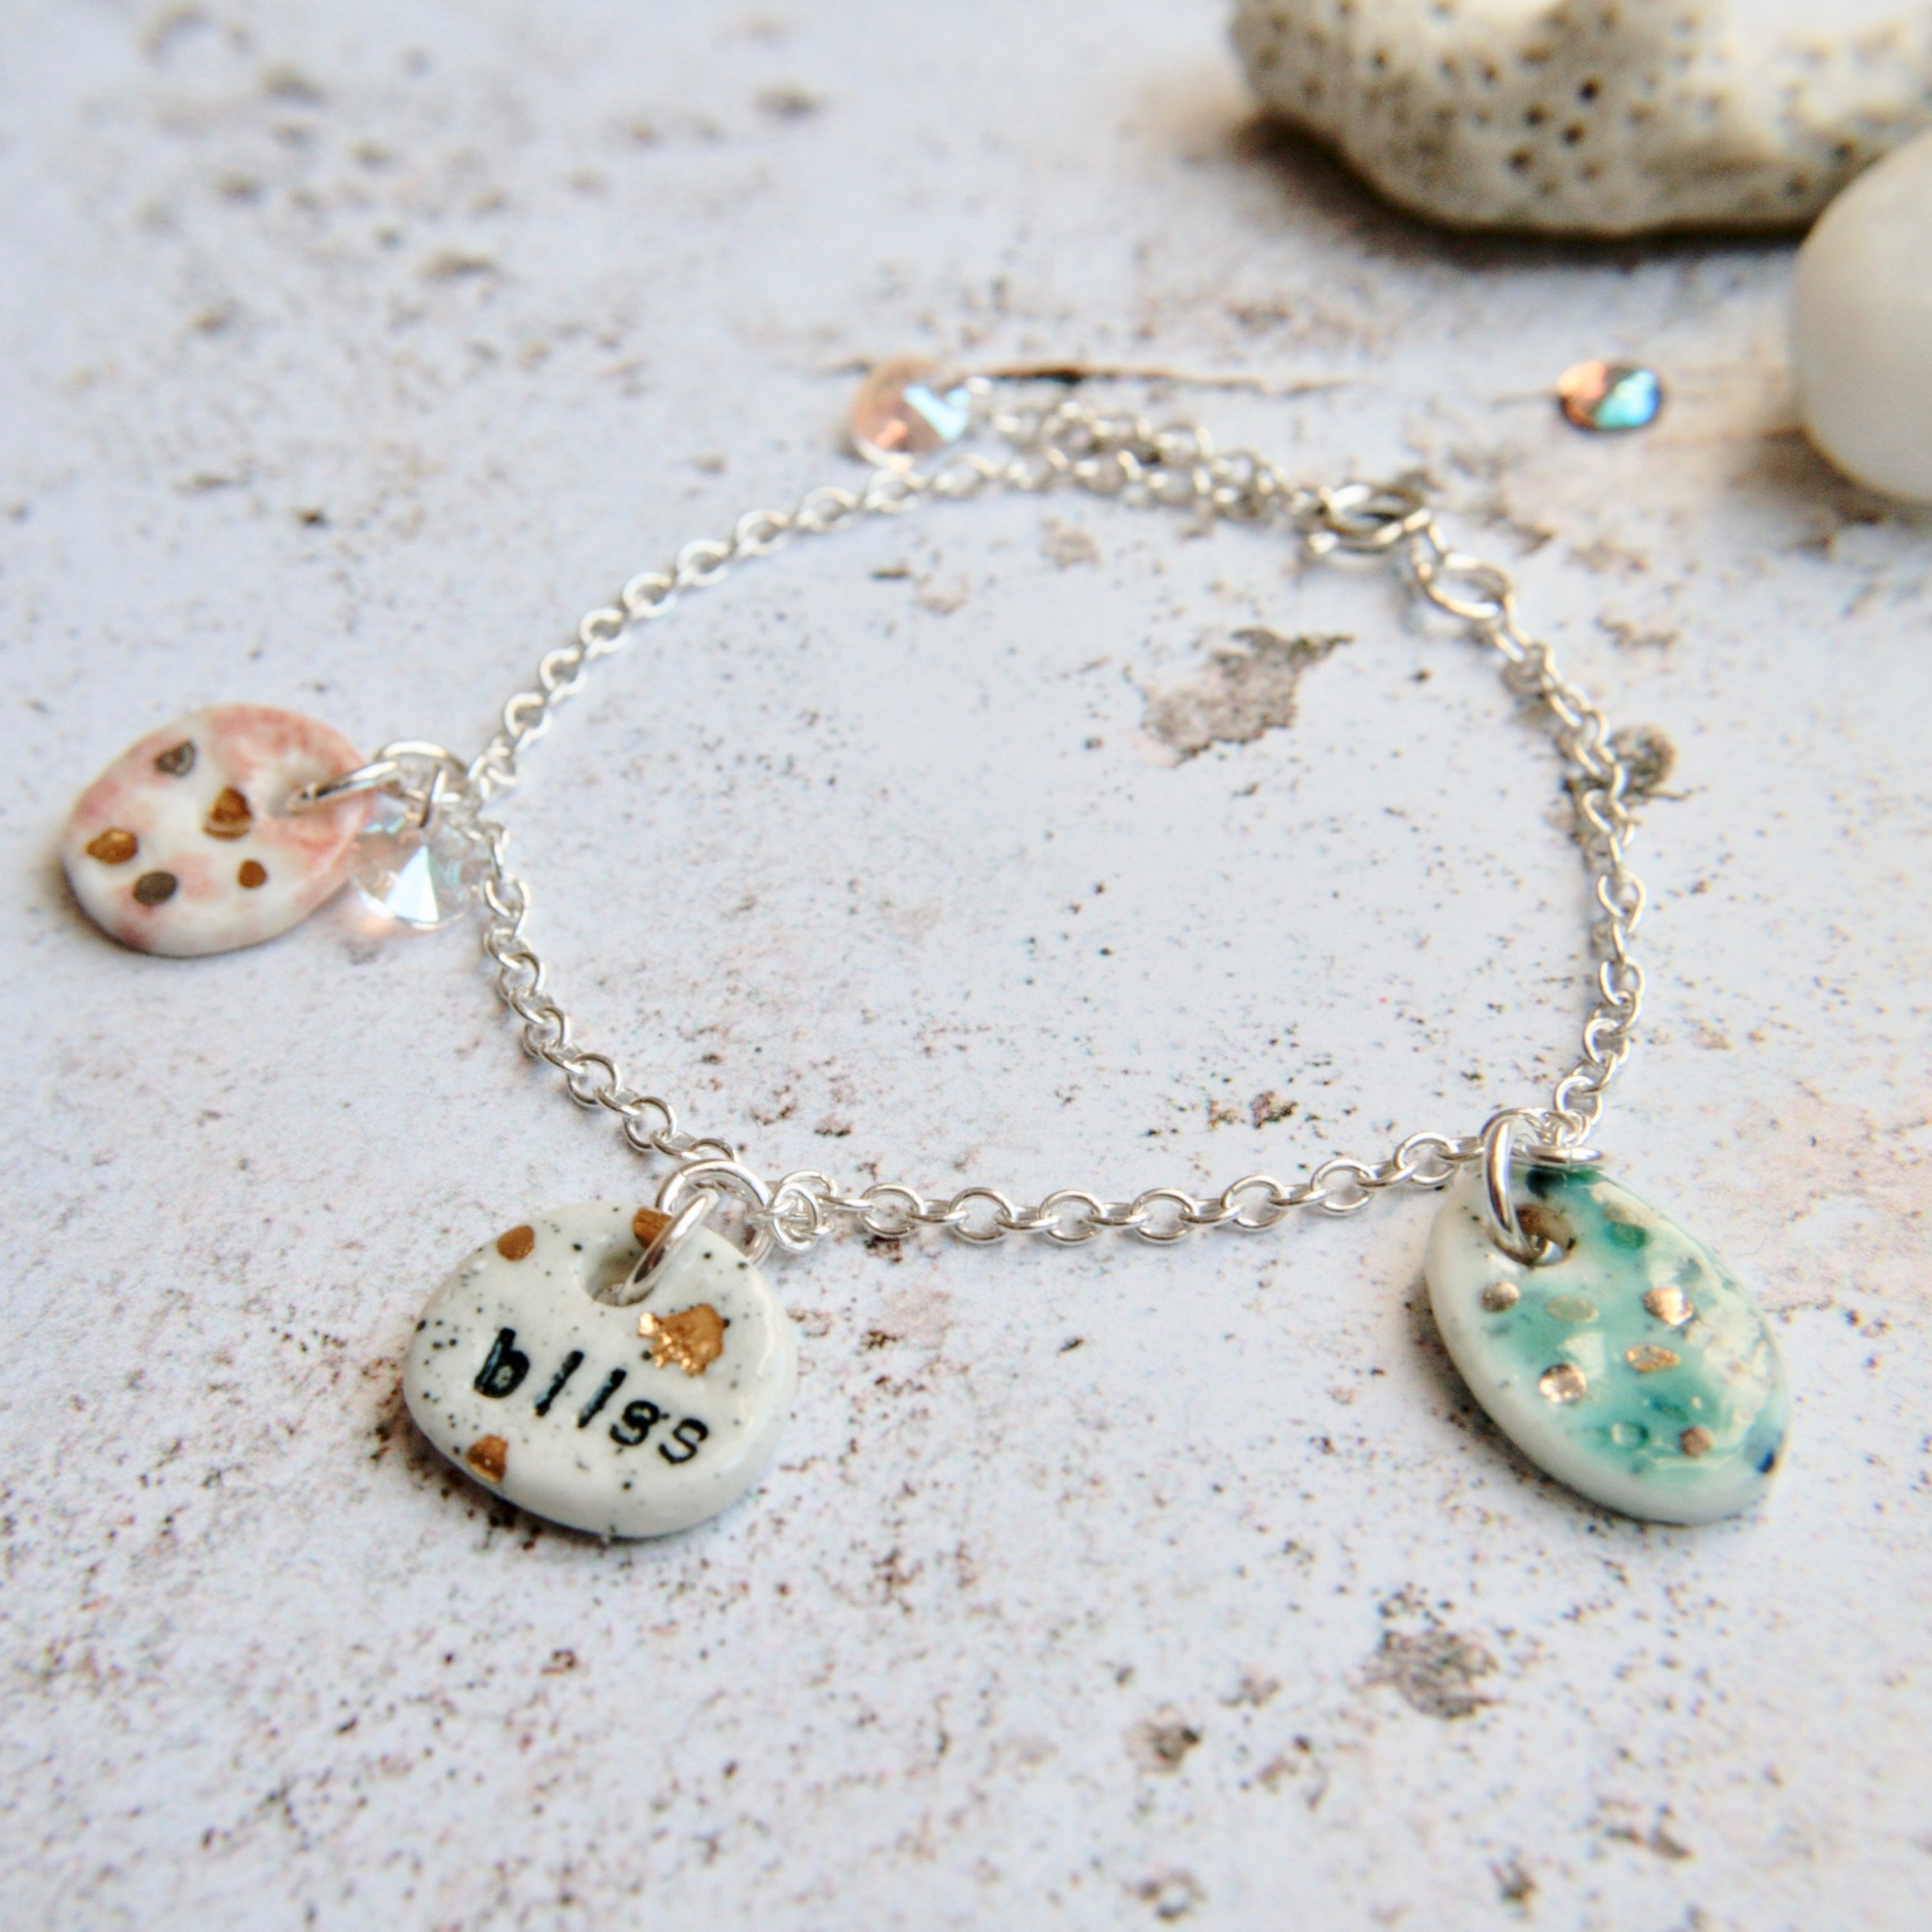 silver bracelet with handmade charms